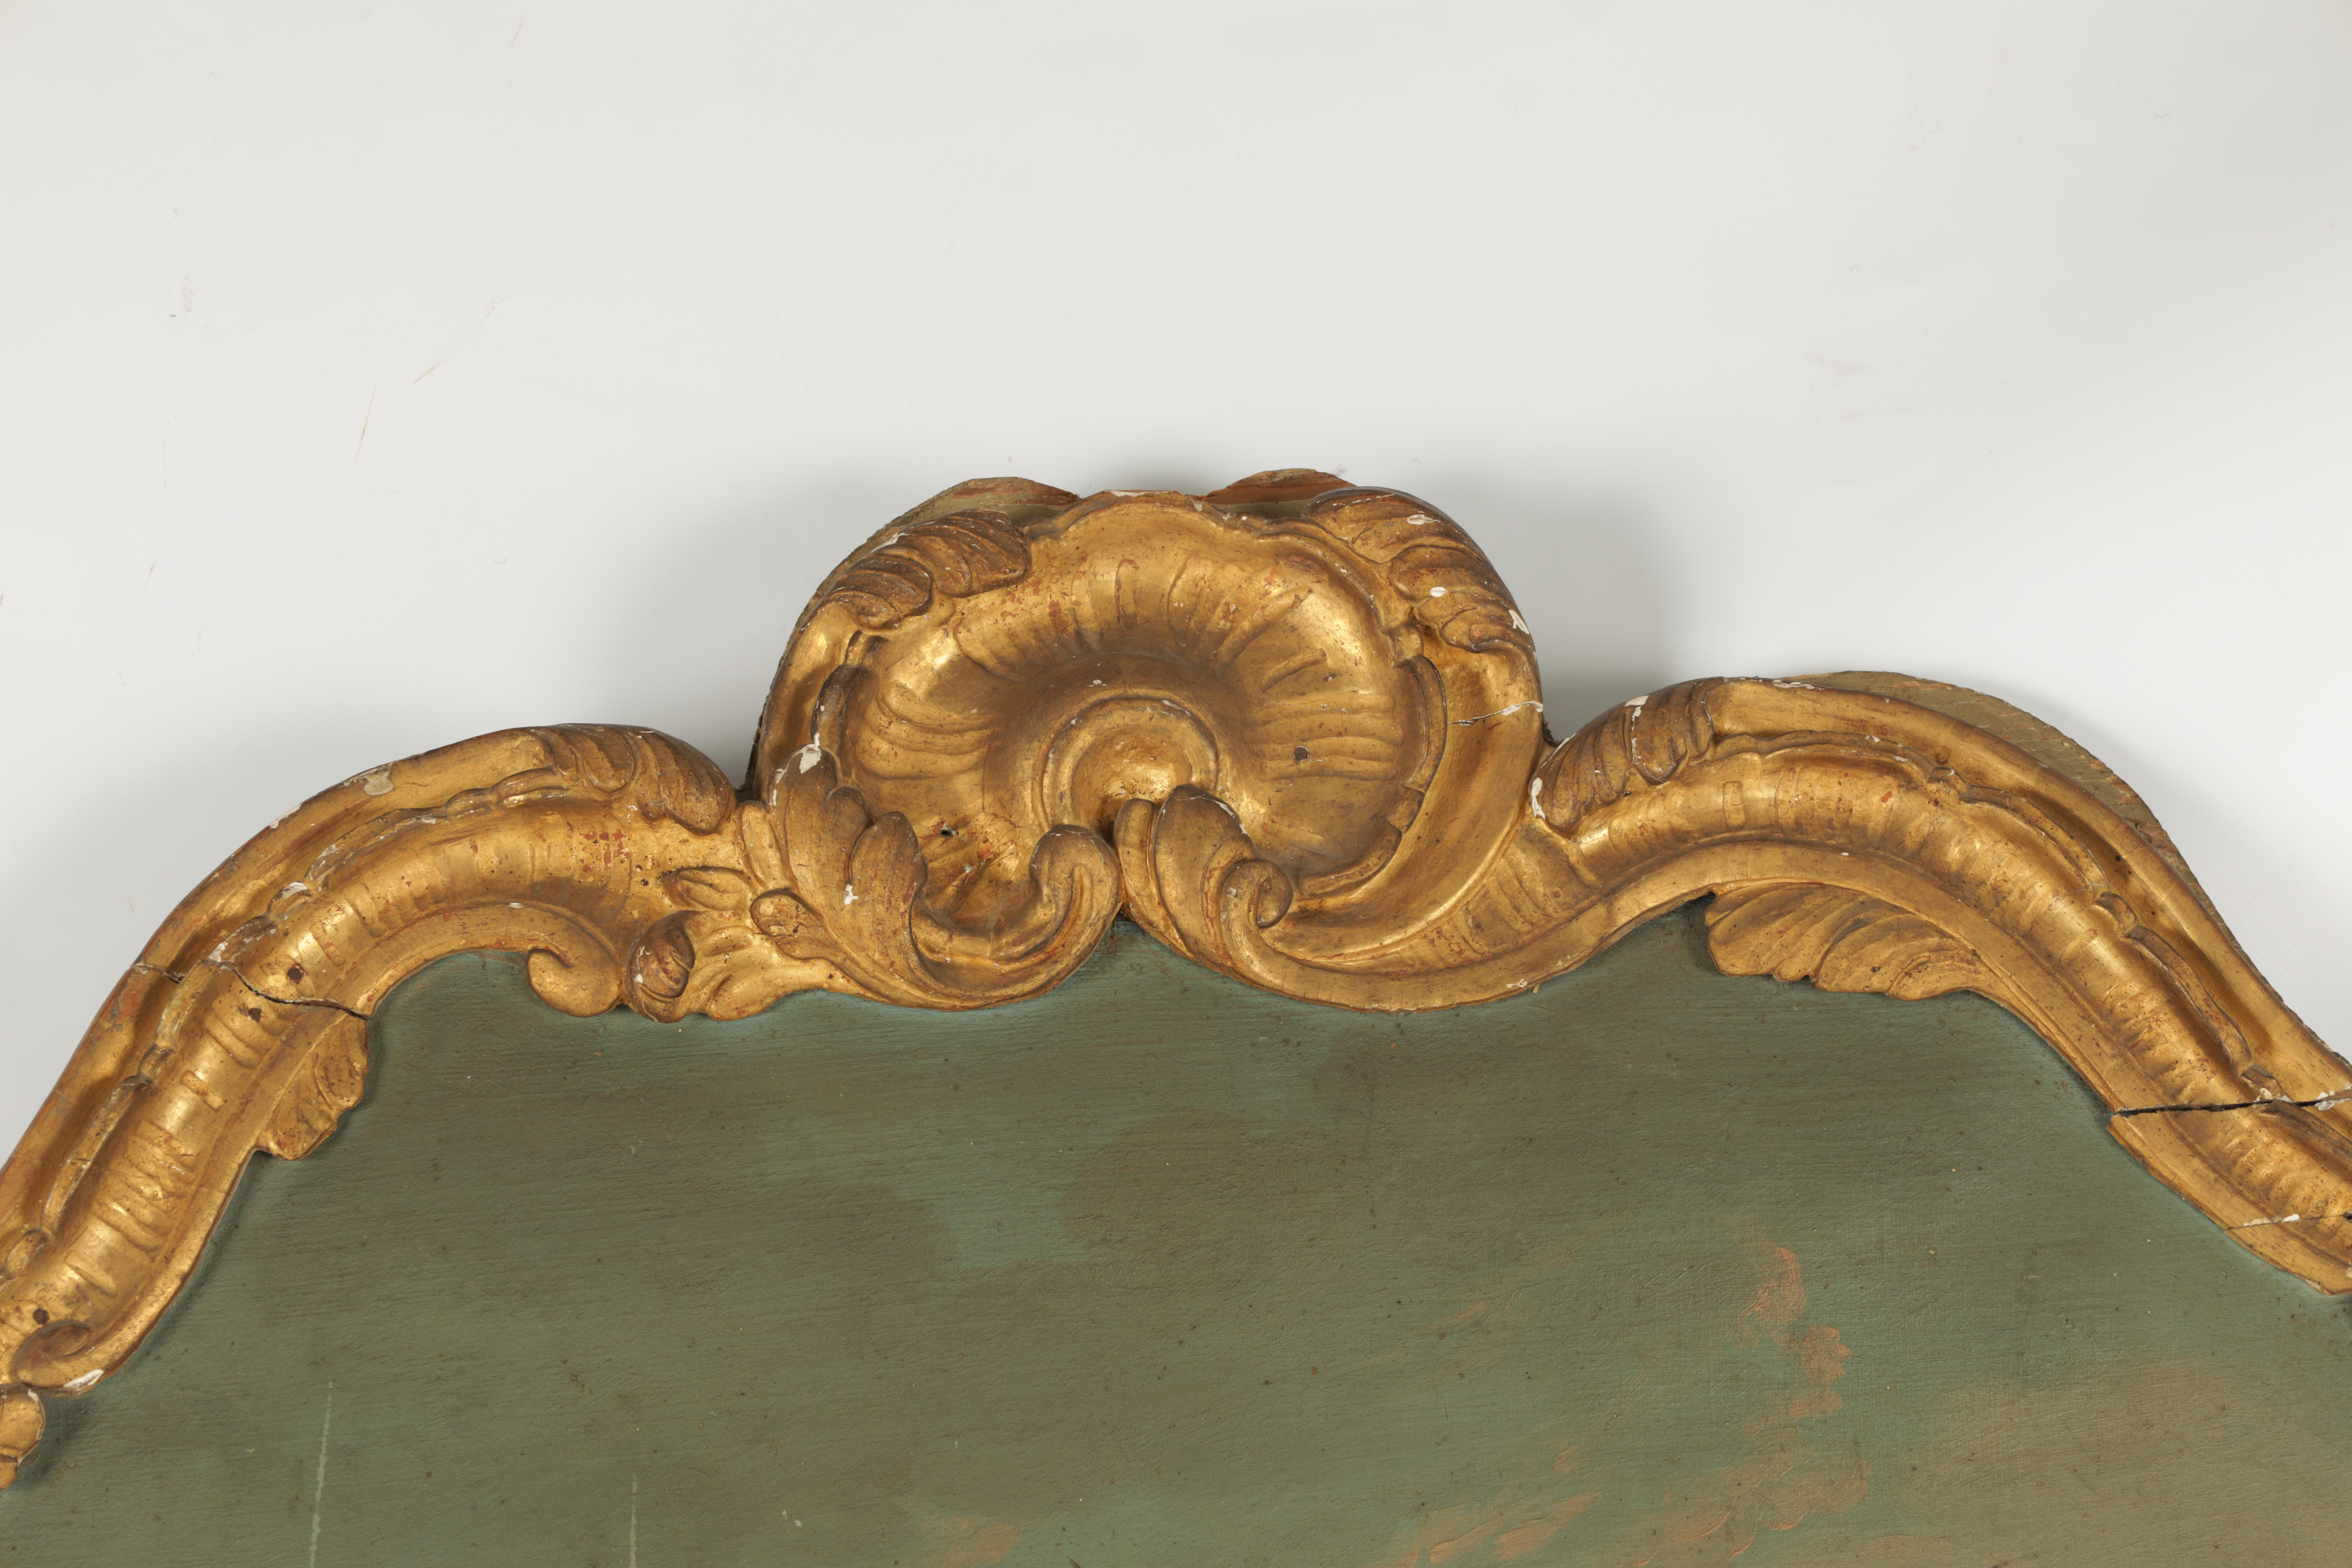 AN EARLY 18TH CENTURY CONTINENTAL GILTWOOD ROCOCO STYLE PIER MIRROR with leaf work carved frame - Image 4 of 5